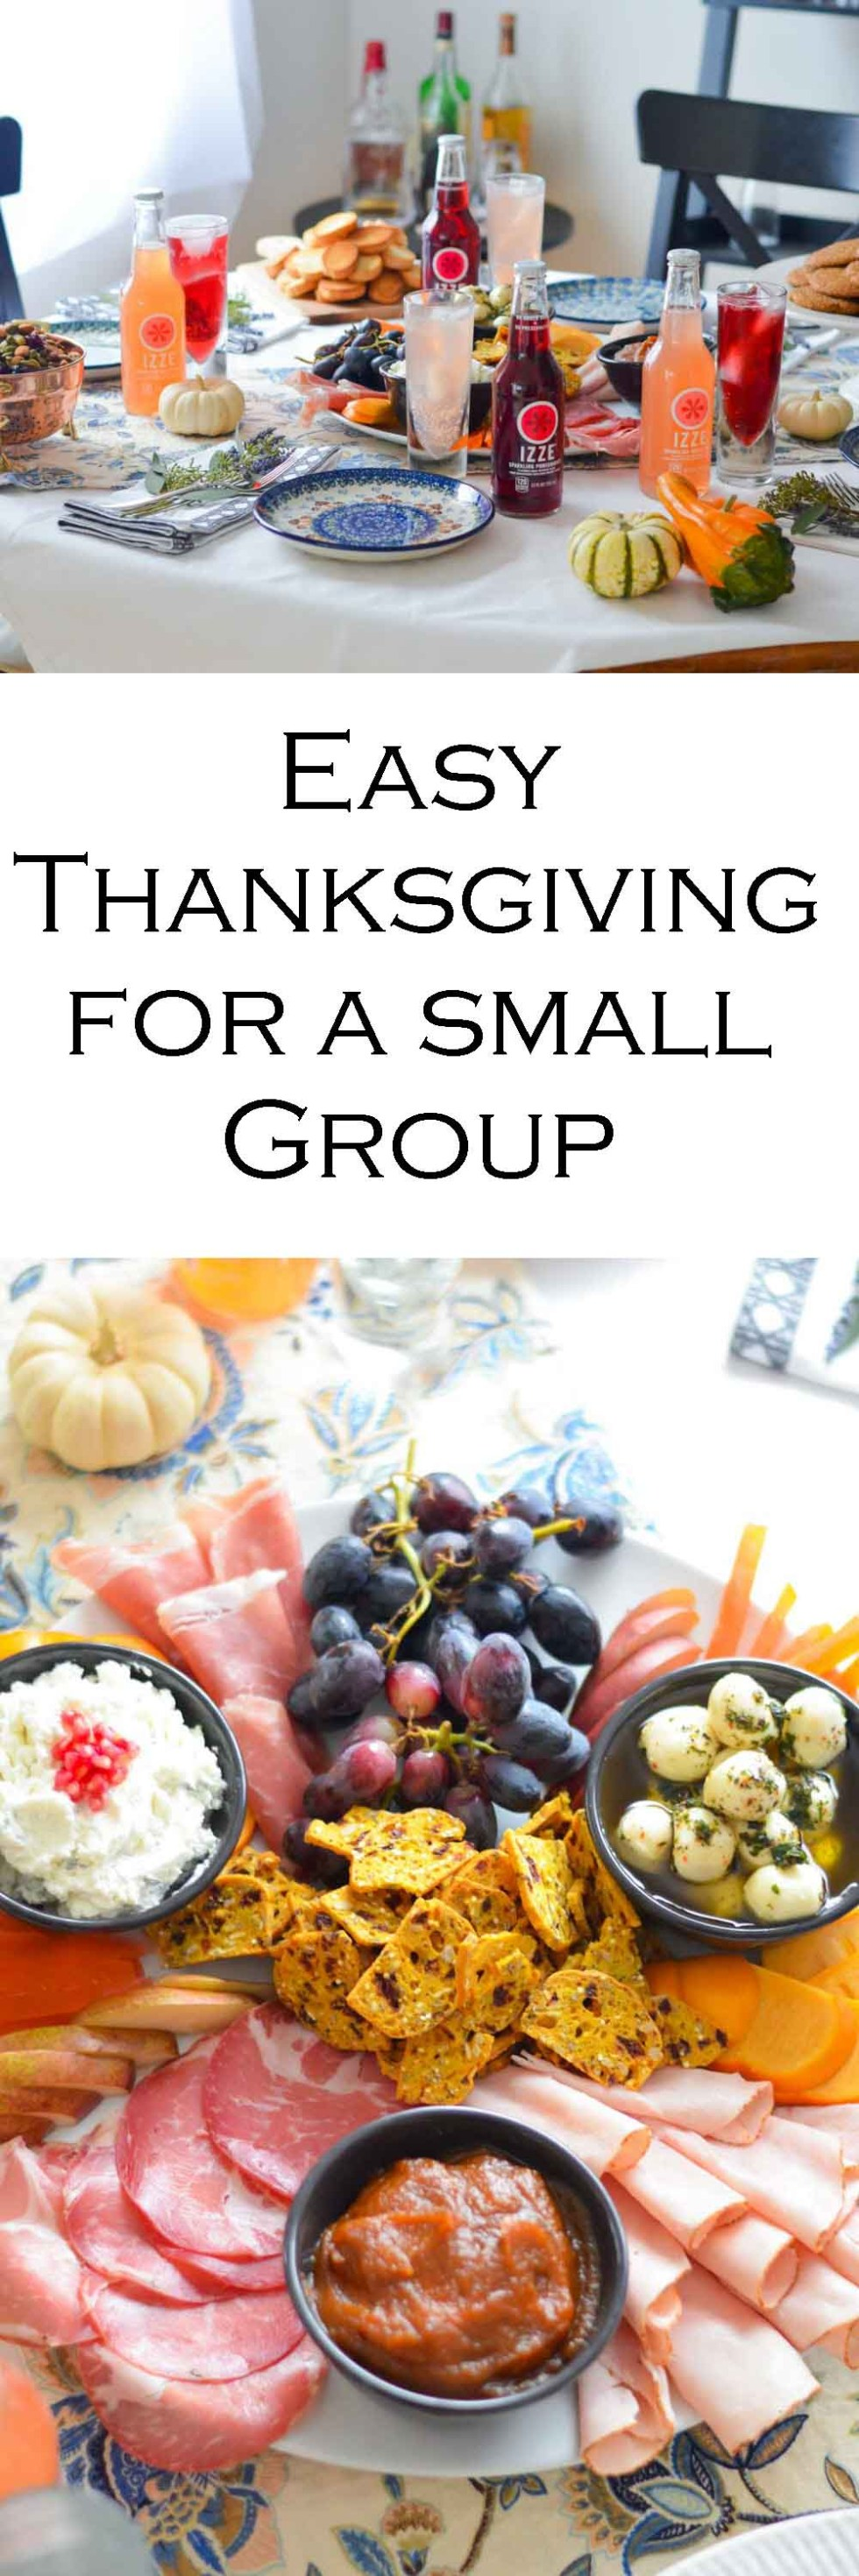 Easy Thanksgiving for Small Groups - Food Ideas + Party Menu #friendsgiving #charctuerie #entertaining #hostess #meatplatter #cheeseplatter #hosting #foodideas #foodbloggers